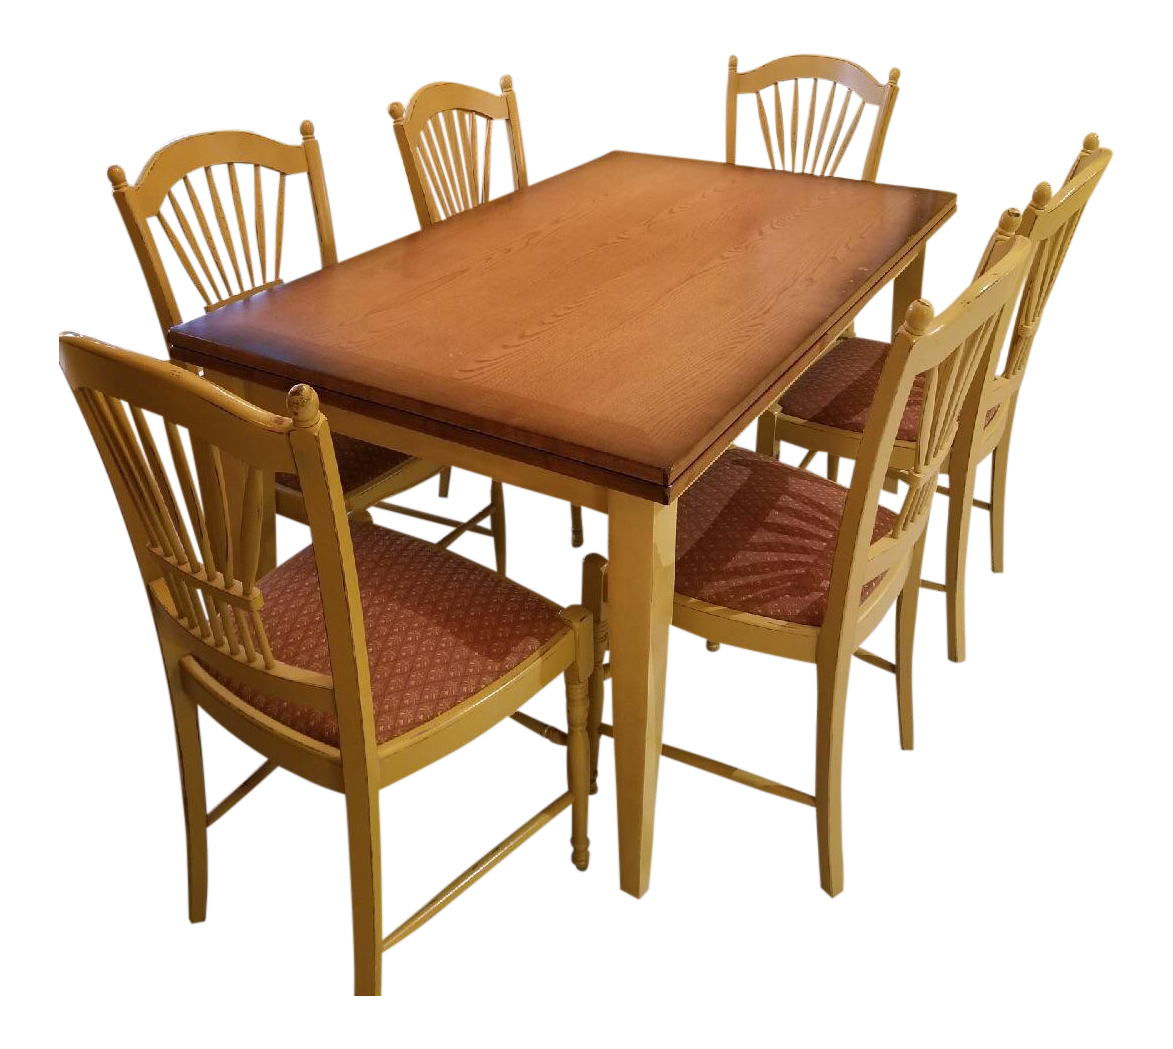 Arhaus Extendable Table With 6 Dining Chairs And 3 Matching Barstools